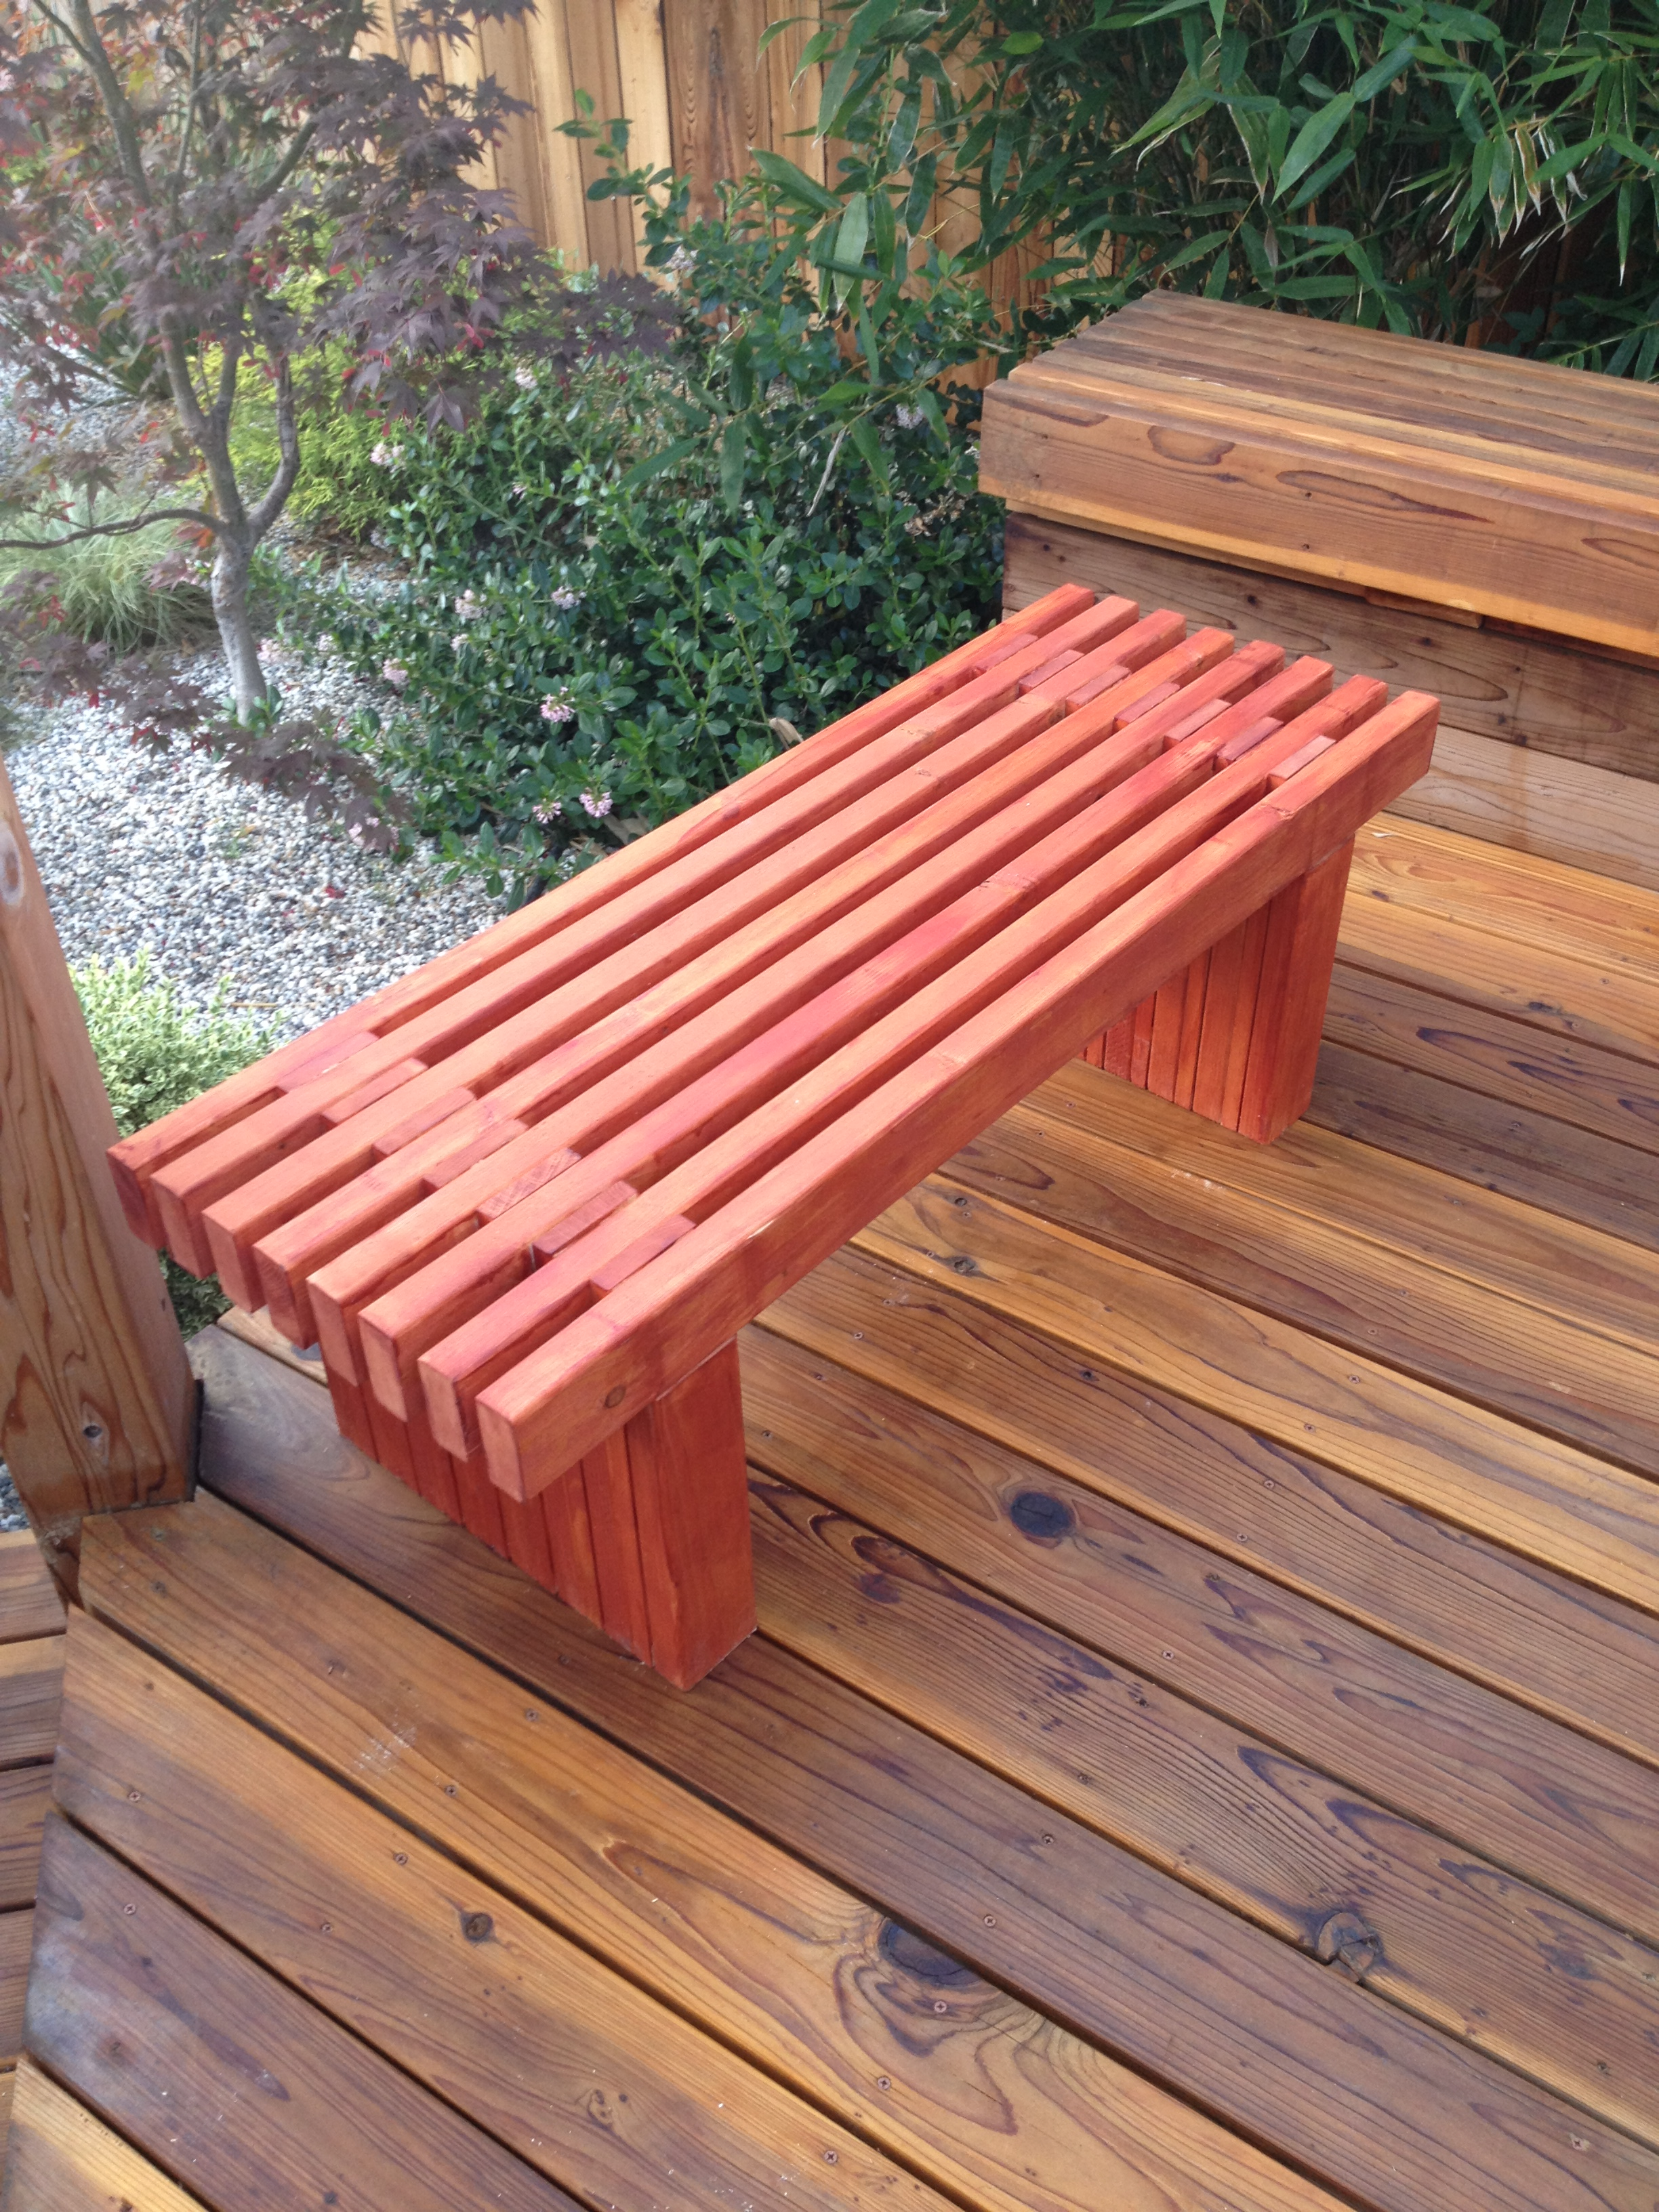 Plant Bench Indoor Woodworking Raised Planter Box And Bench Casa De Wade